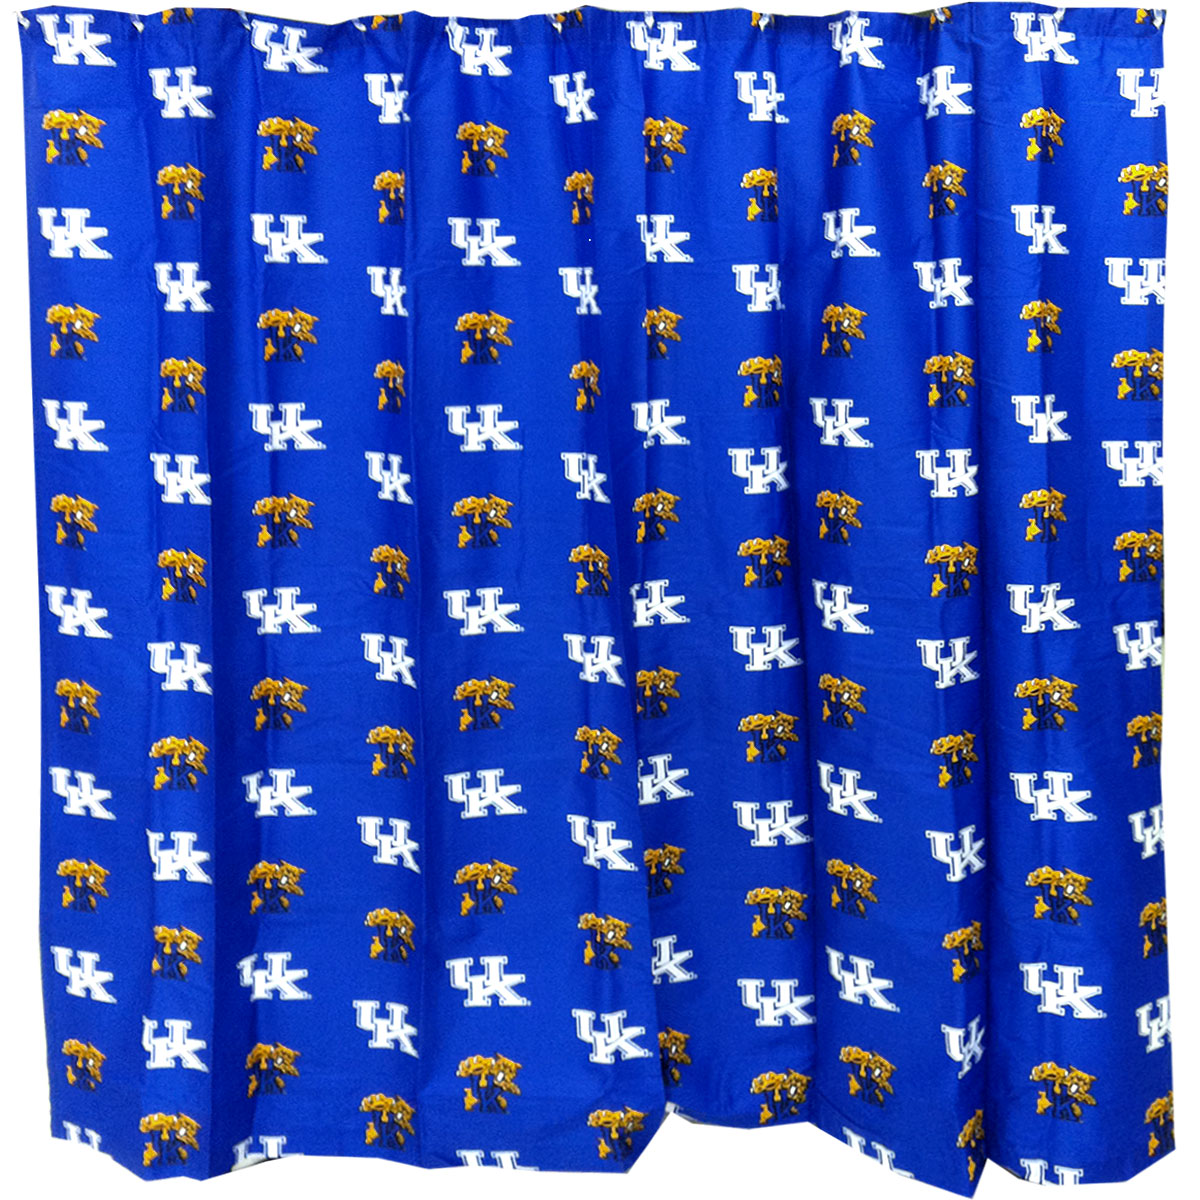 Kentucky Wildcats 1200x1200